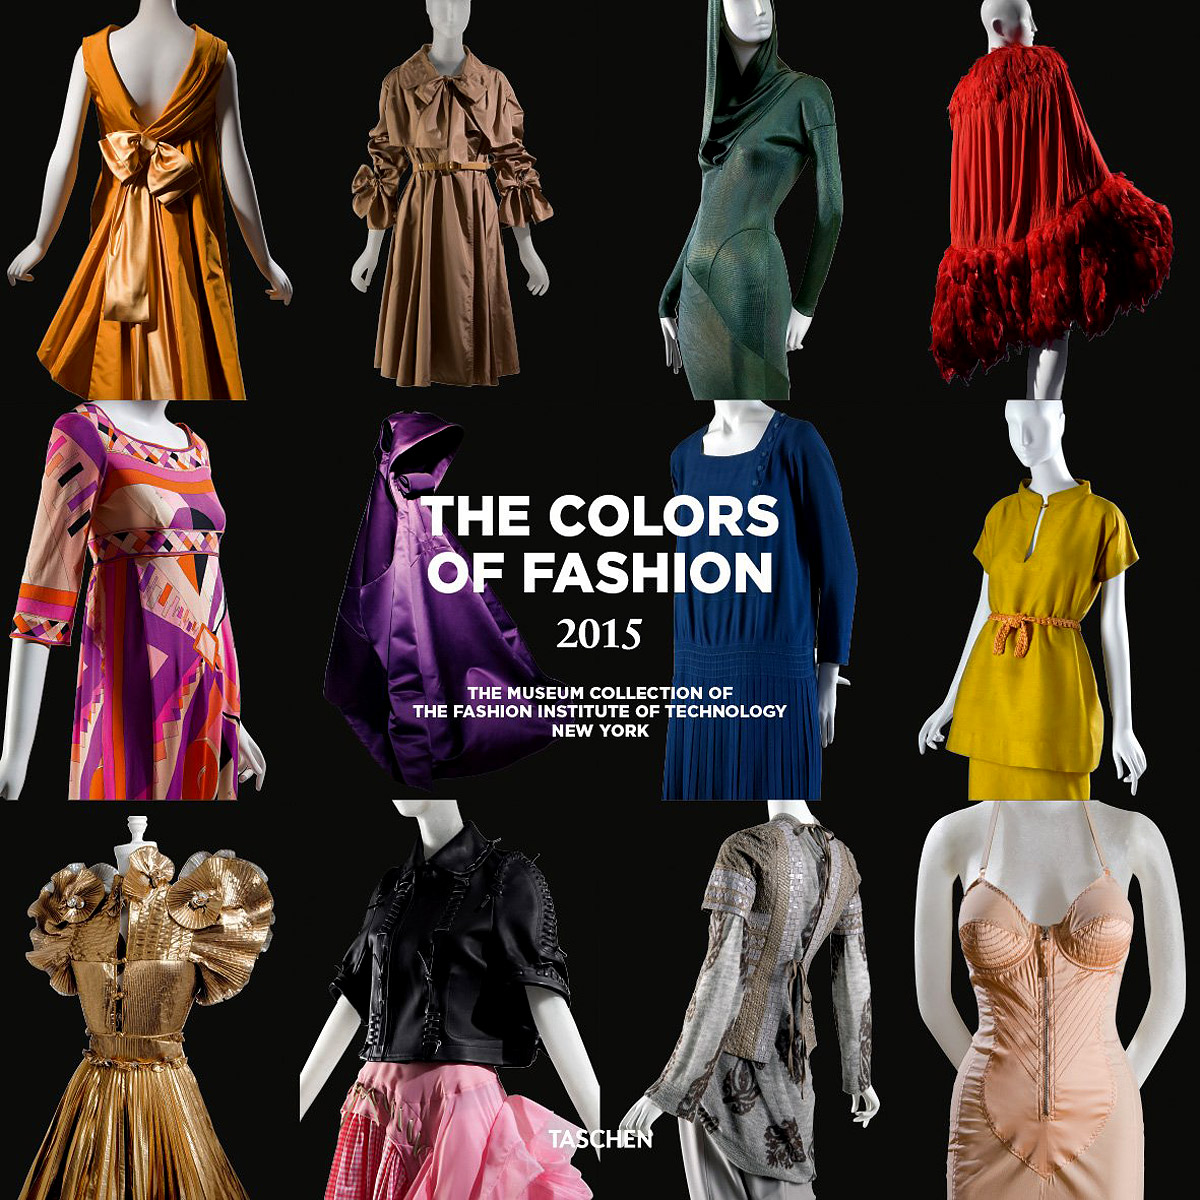 The fashion institute fees 22